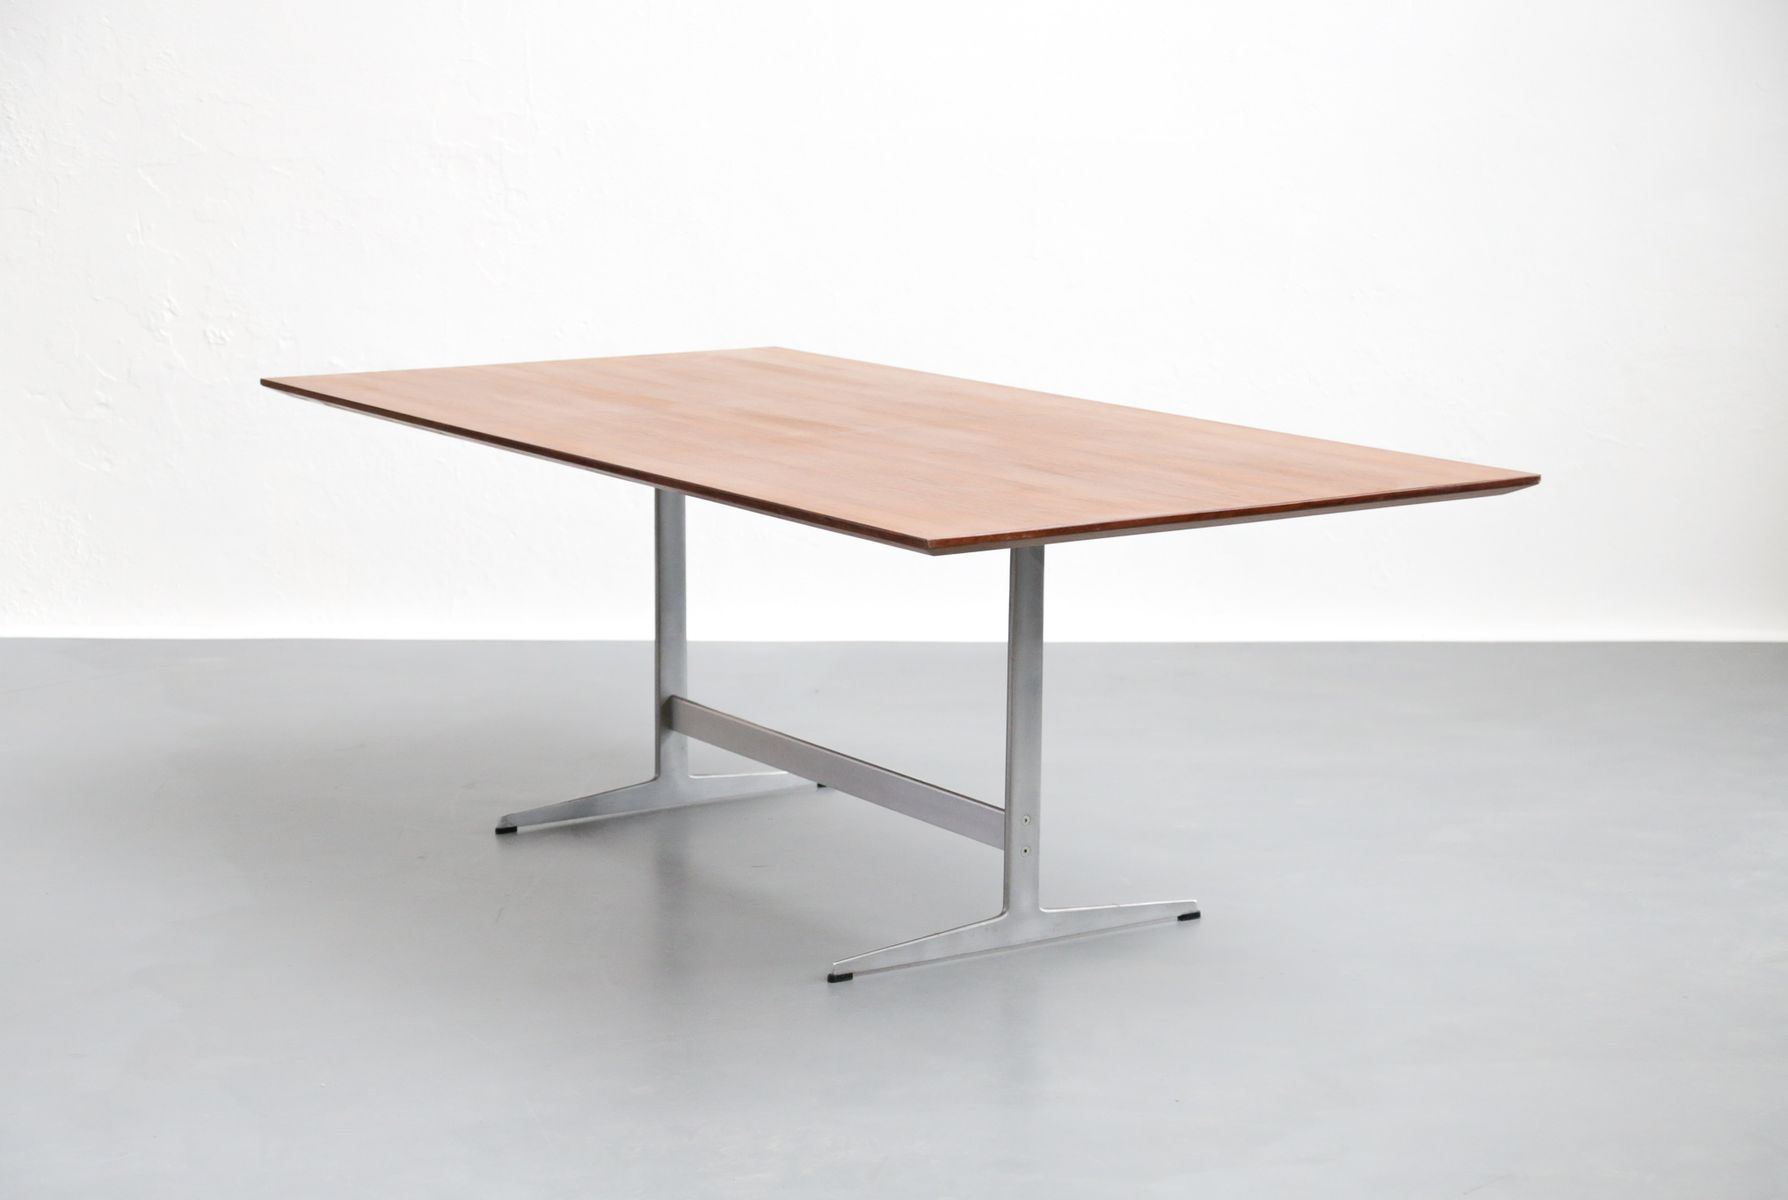 Table de salon vintage par arne jacobsen pour fritz hansen - Table de salon antique ...